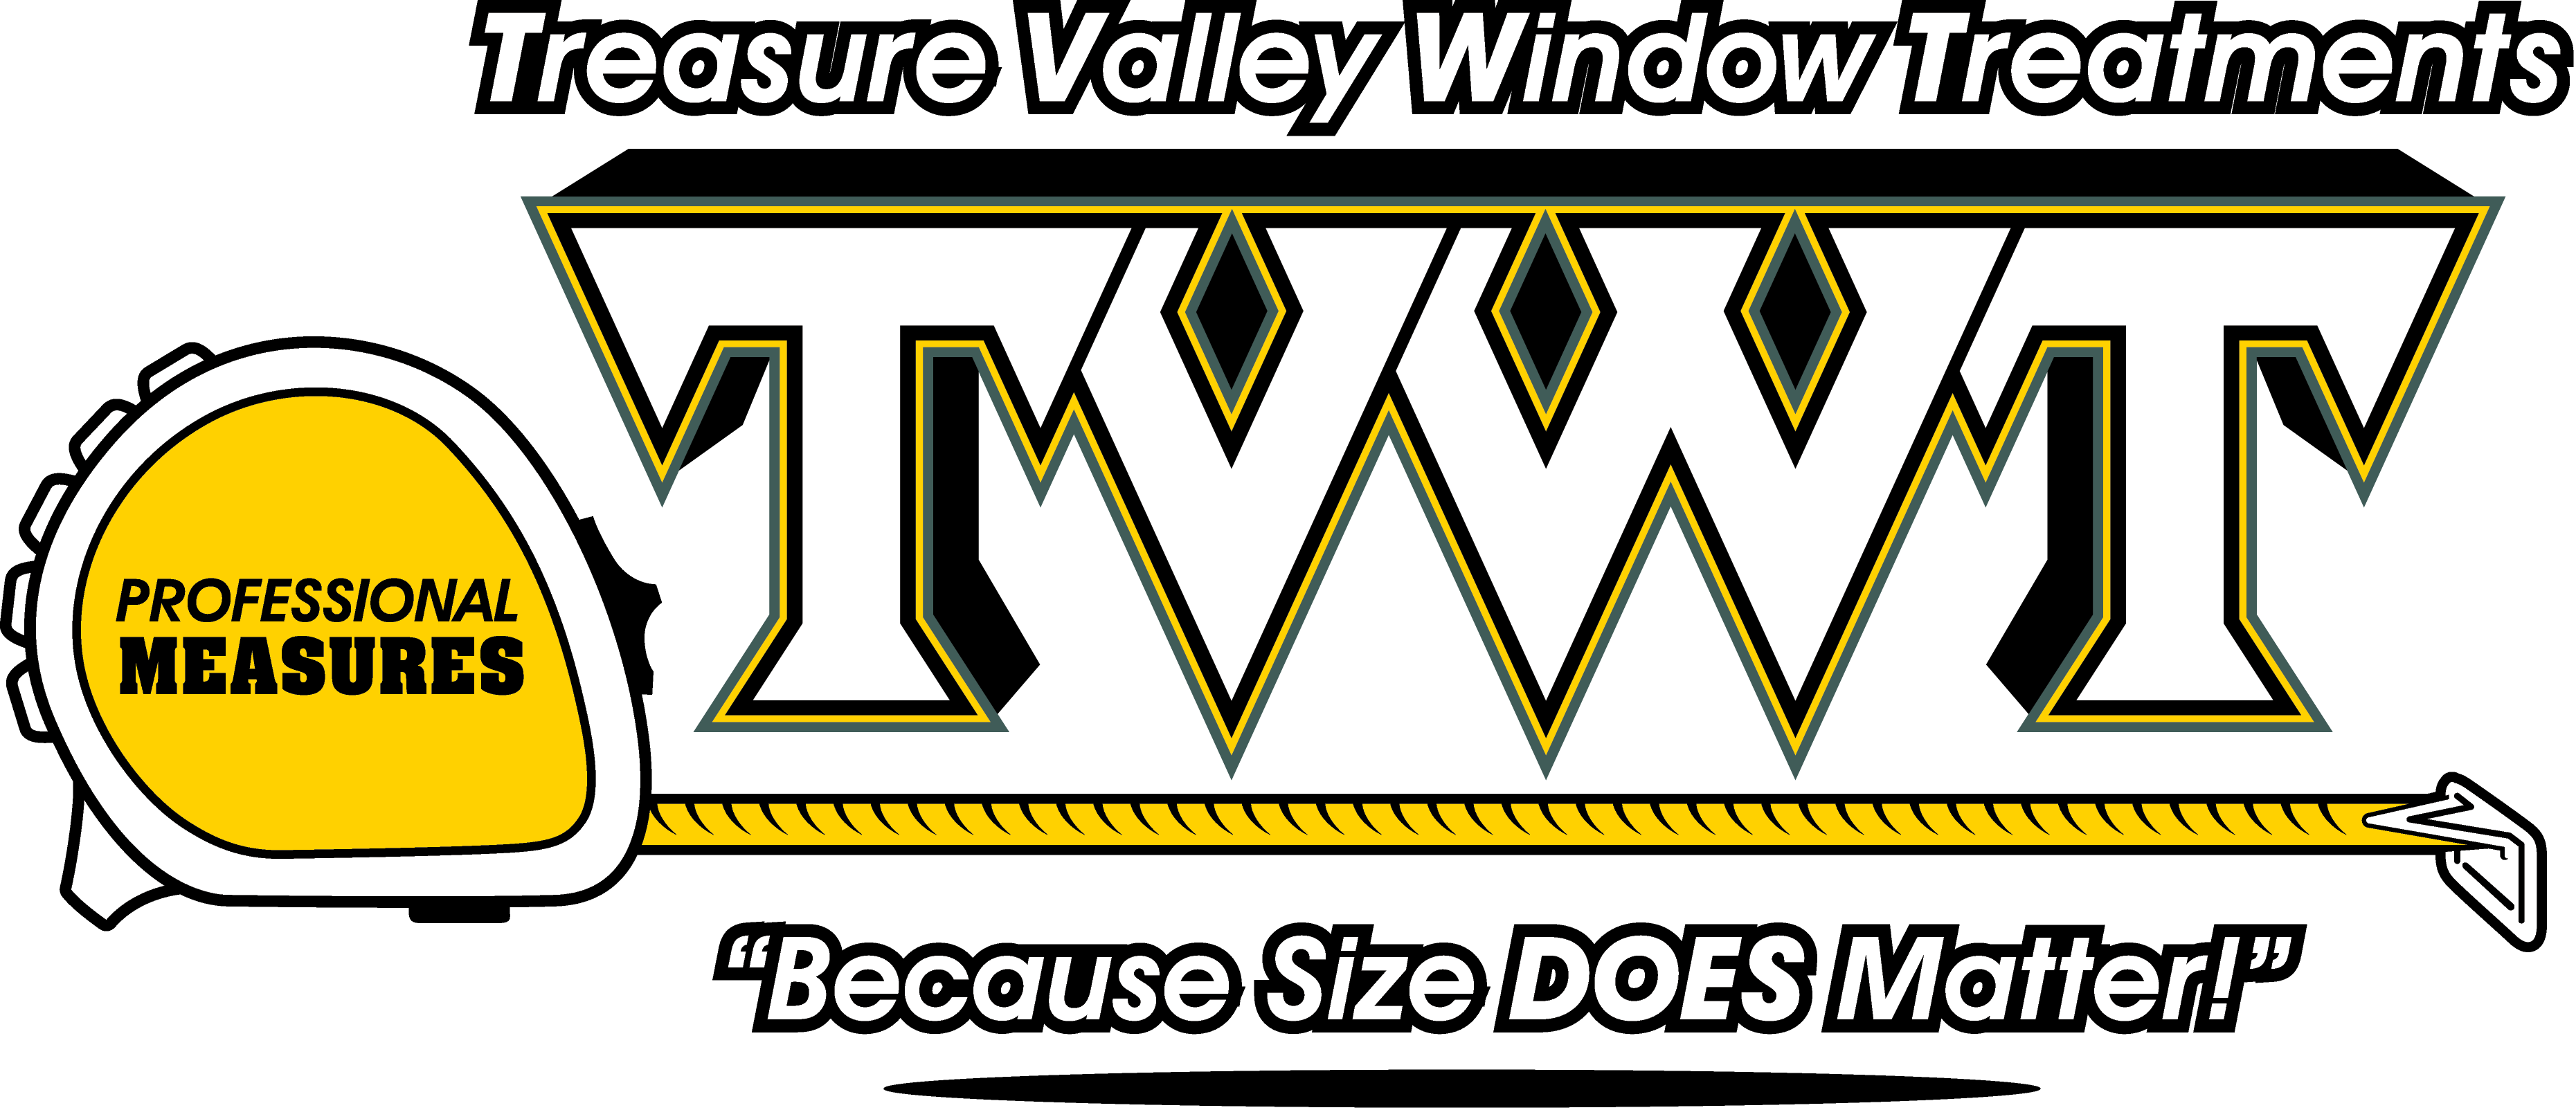 treasure-valley-window-treatments-logo